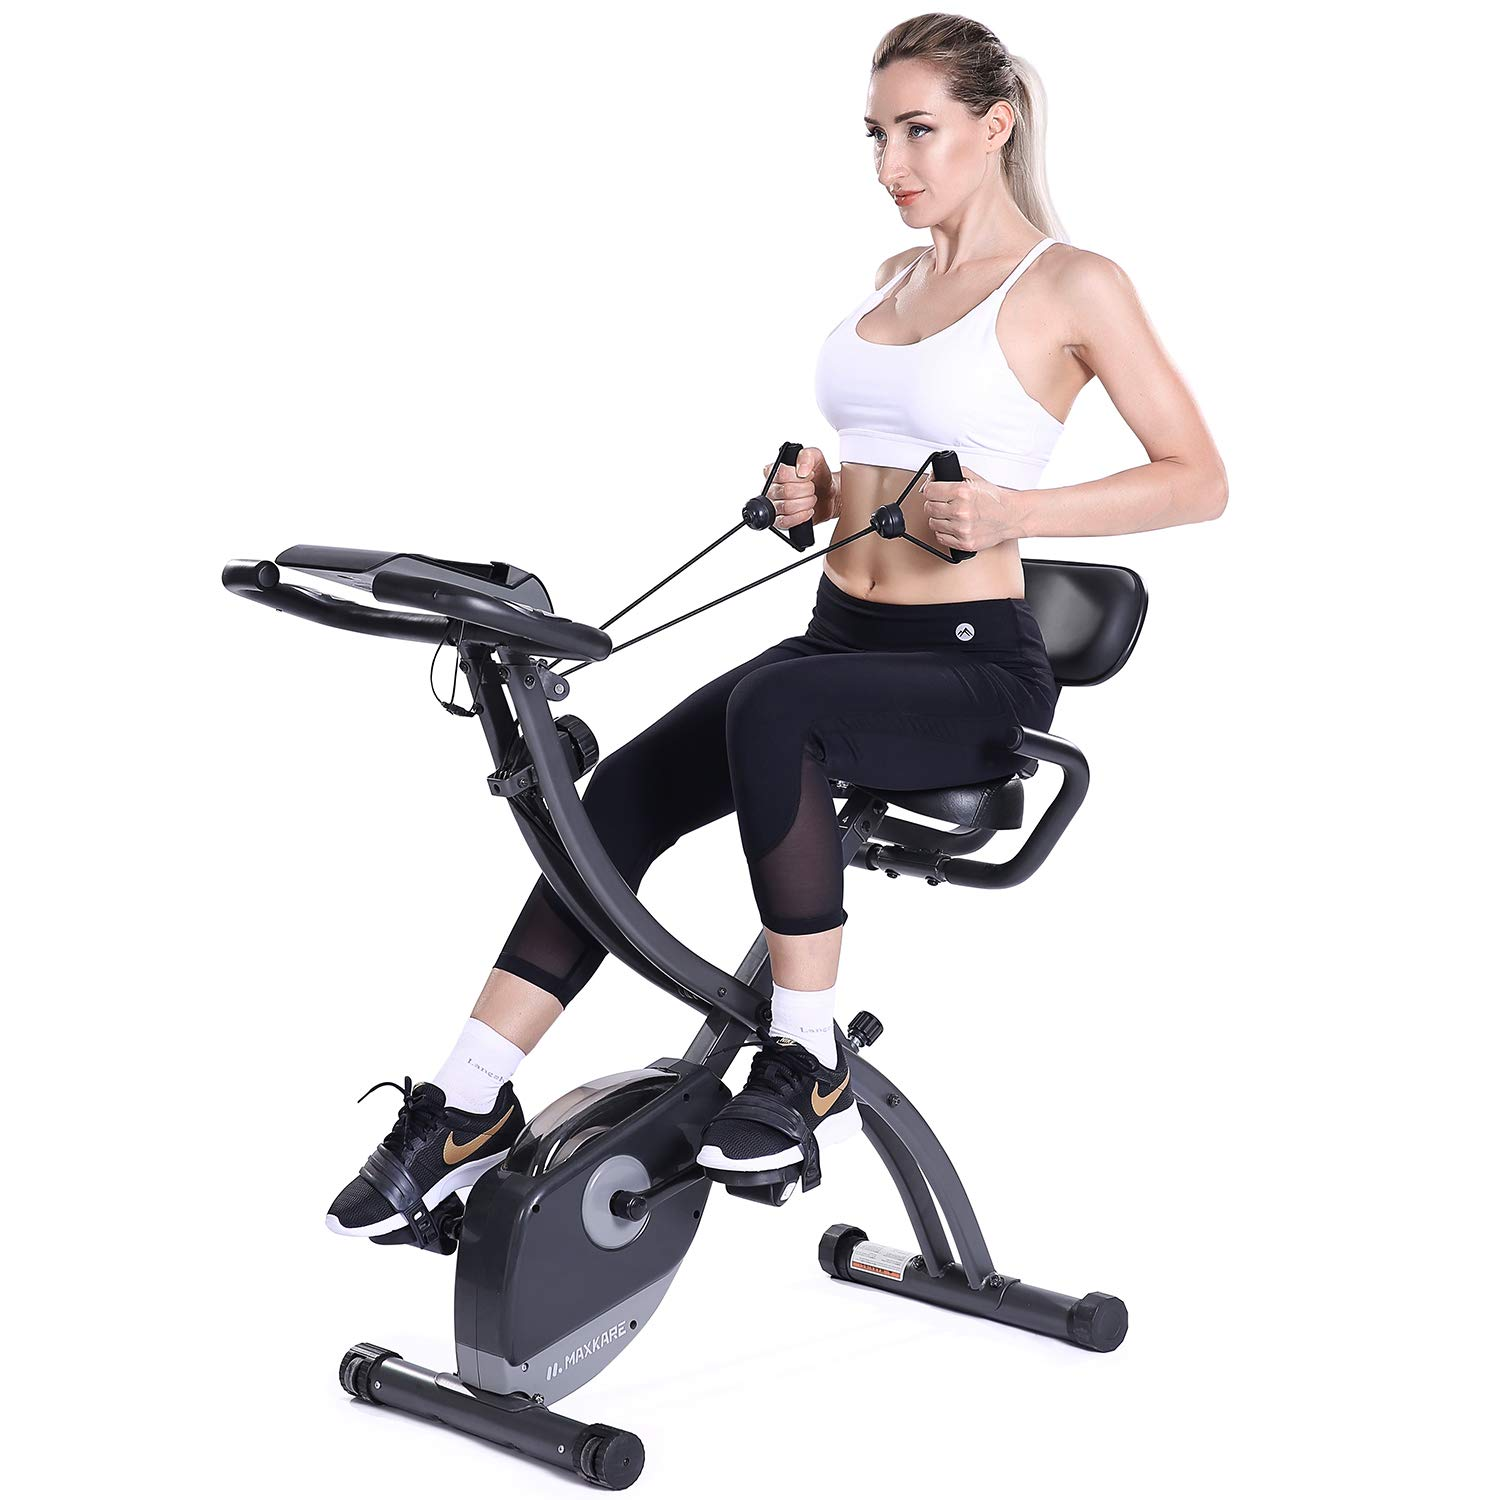 MaxKare 3 in1 Folding Magnetic Upright Exercise Bike w Pulse, Indoor Stationary Bike with Adjustable Arm Resistance Bands and LCD Monitor